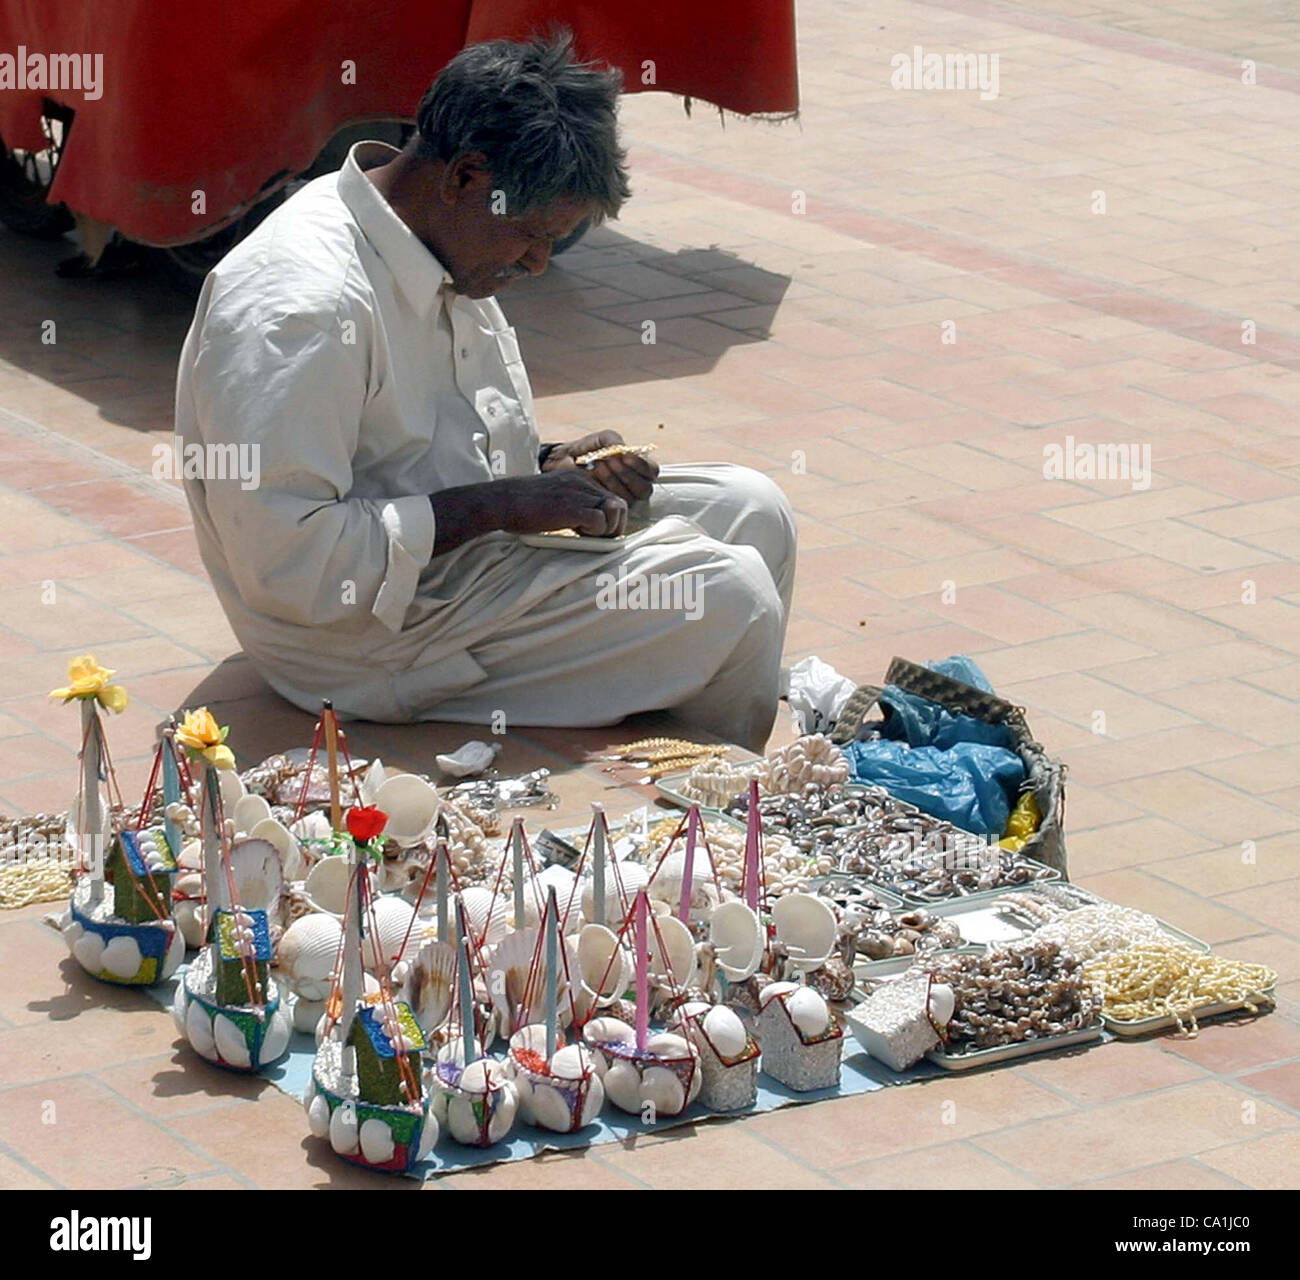 A Man Sells Handmade Home Decoration Items To Earn His Livelihood For  Support His Family At Seaview Beach In Karachi On Tuesday, March 20, 2012.